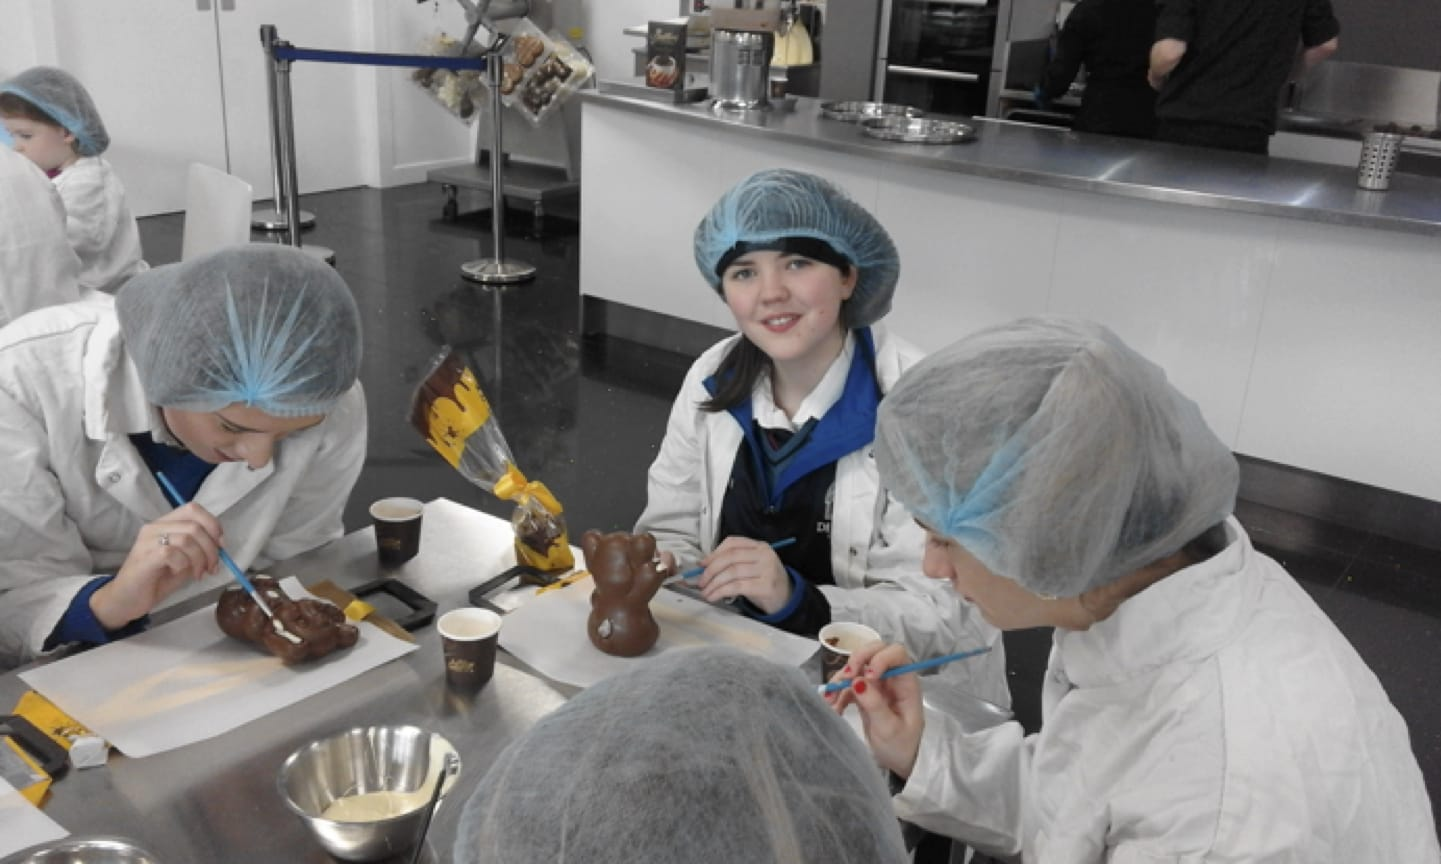 2017: 5th Year Home Economics students from Desmond College Post Primary School Limerick decorating chocolate rabbits at Butler's Chocolate Factory